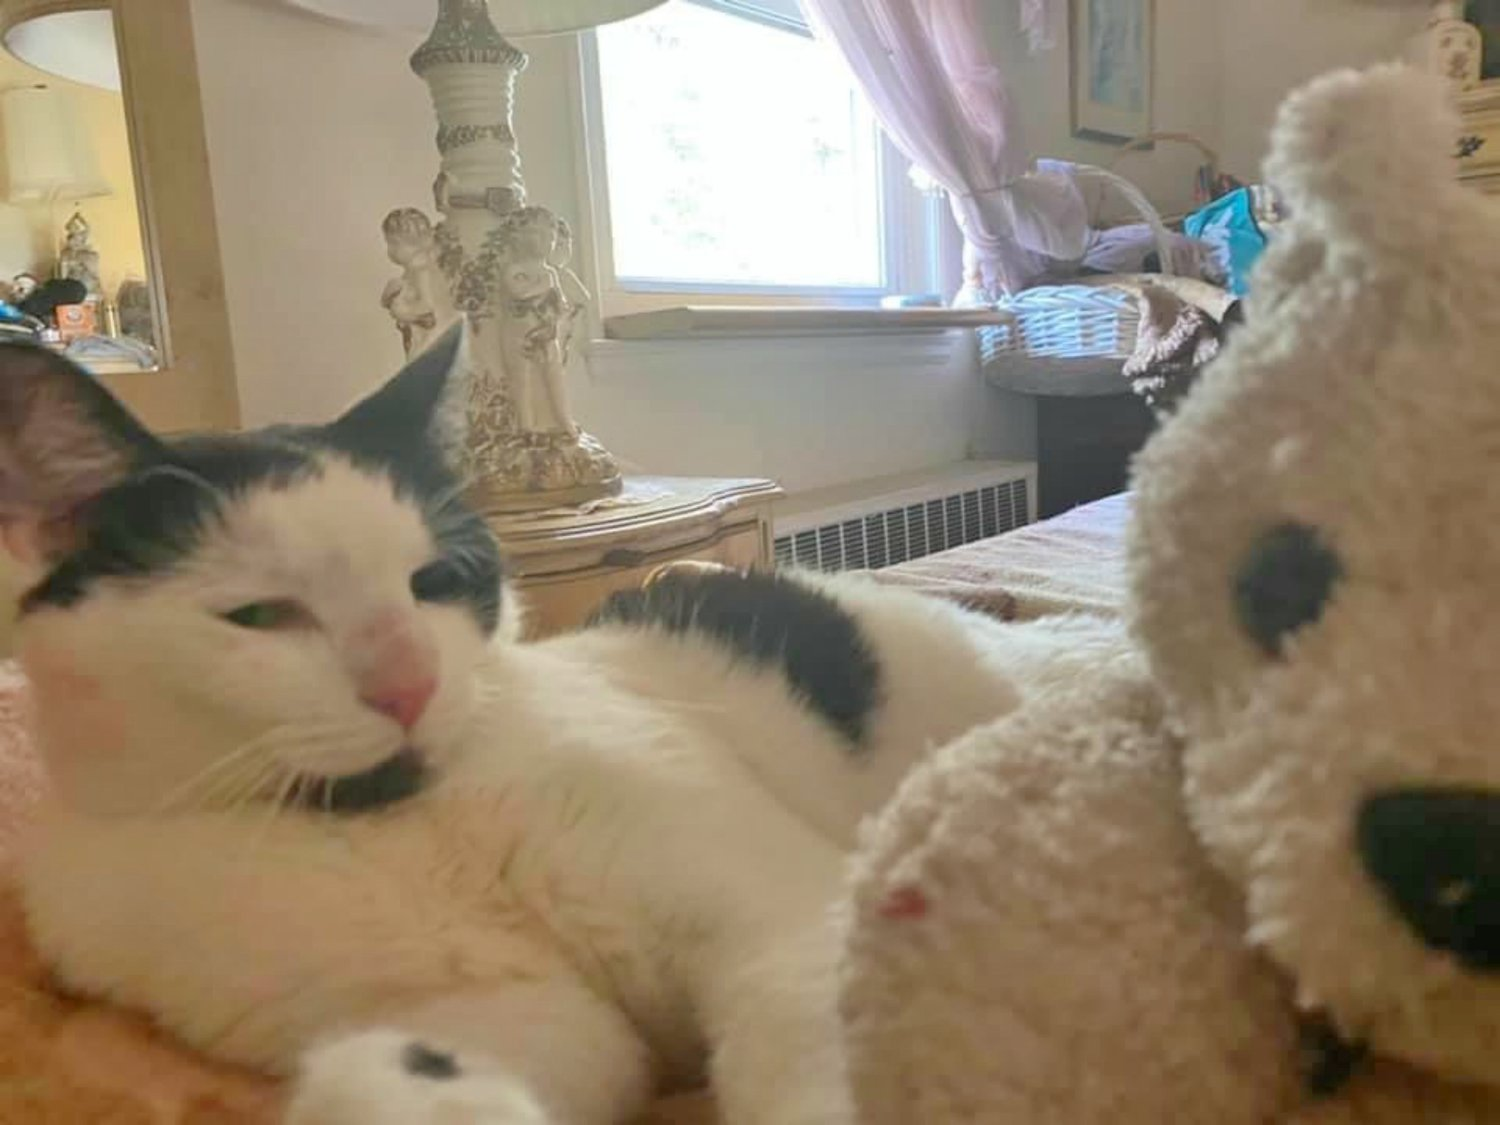 Pebbles the cat has returned home safely to her Glen Cove home after missing for five months.